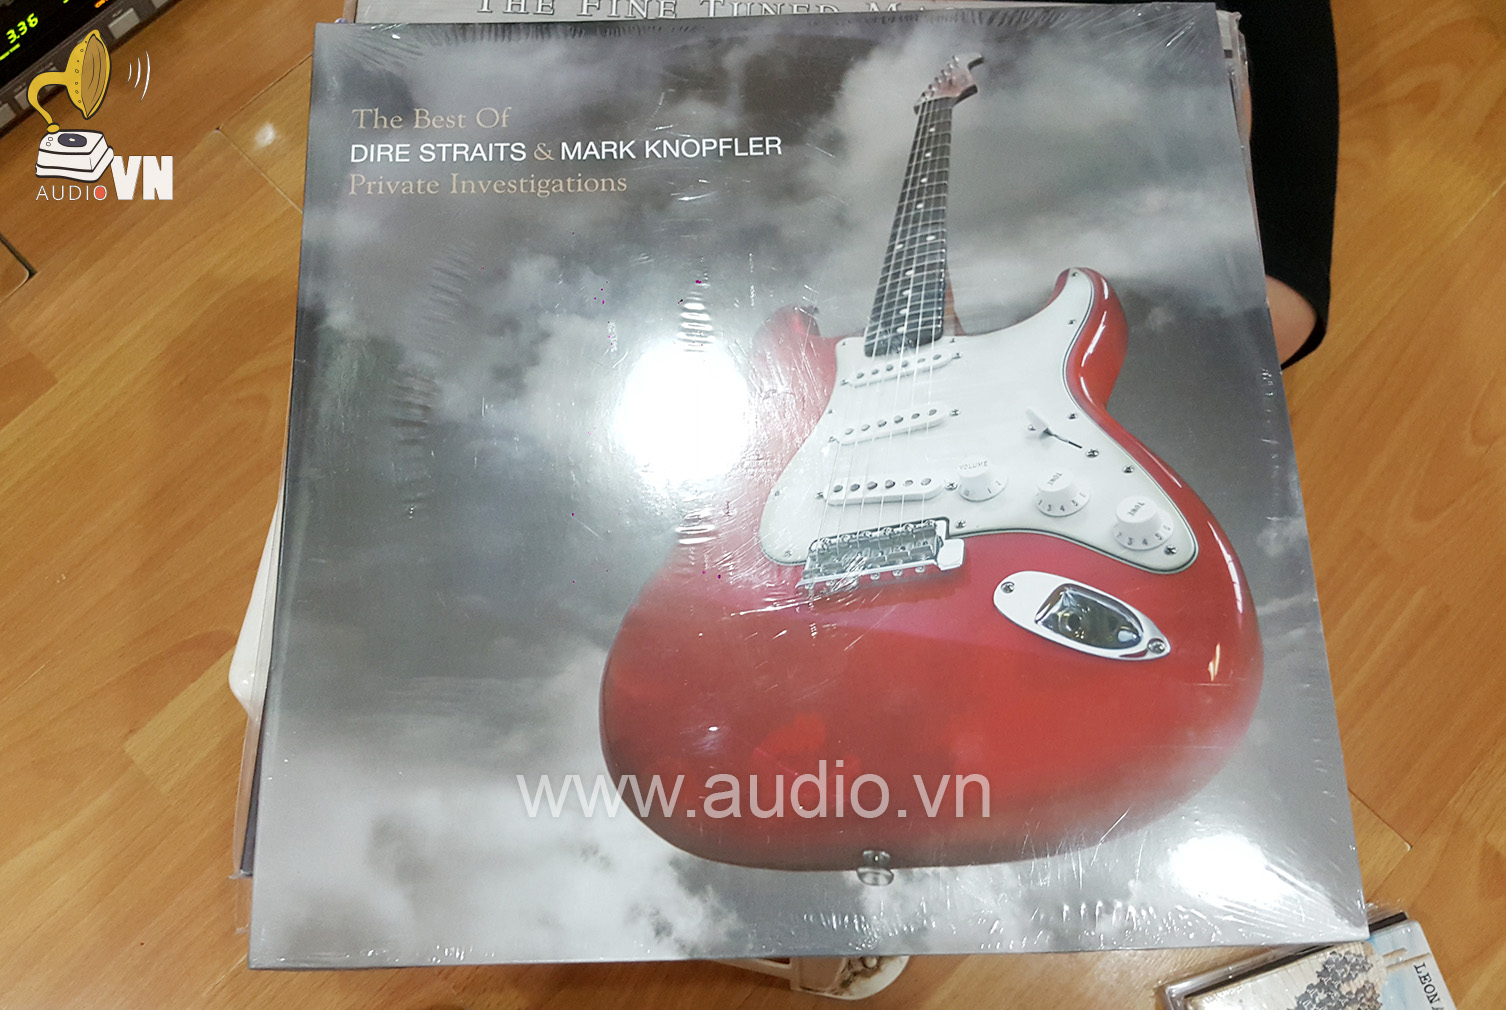 Đĩa than The Best of Dire Straits & Mark Knopfler (1)